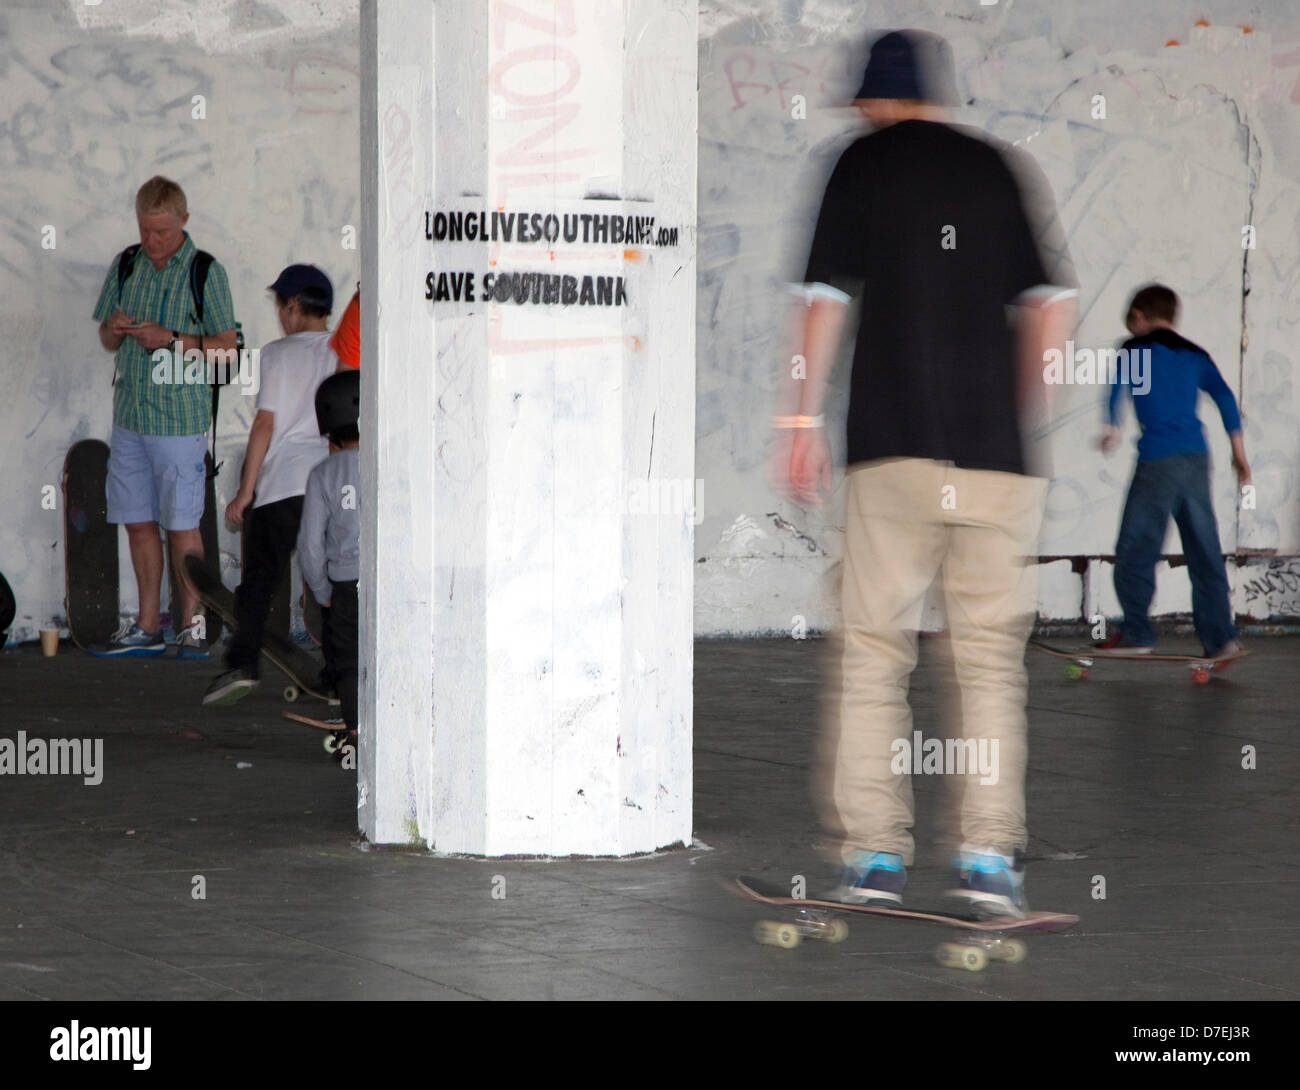 London, UK. 6th May 2013. The skateboarding park in the undercroft on London's South Bank arts centre is threatened Stock Photo